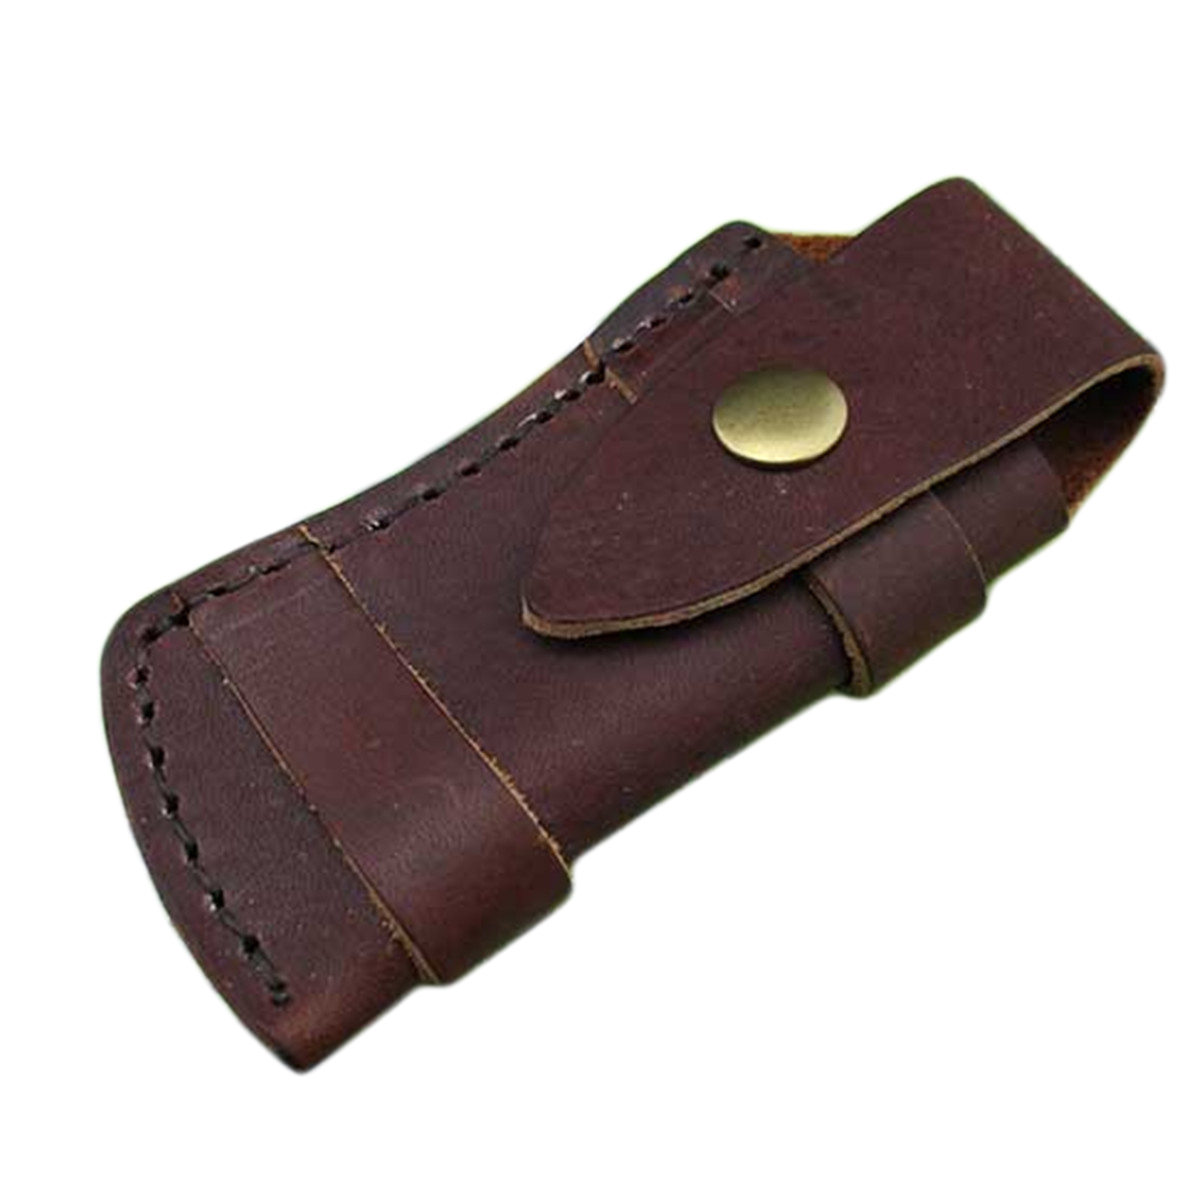 100 Genuine Leather Pouch Folding Pocket Knife Pouch